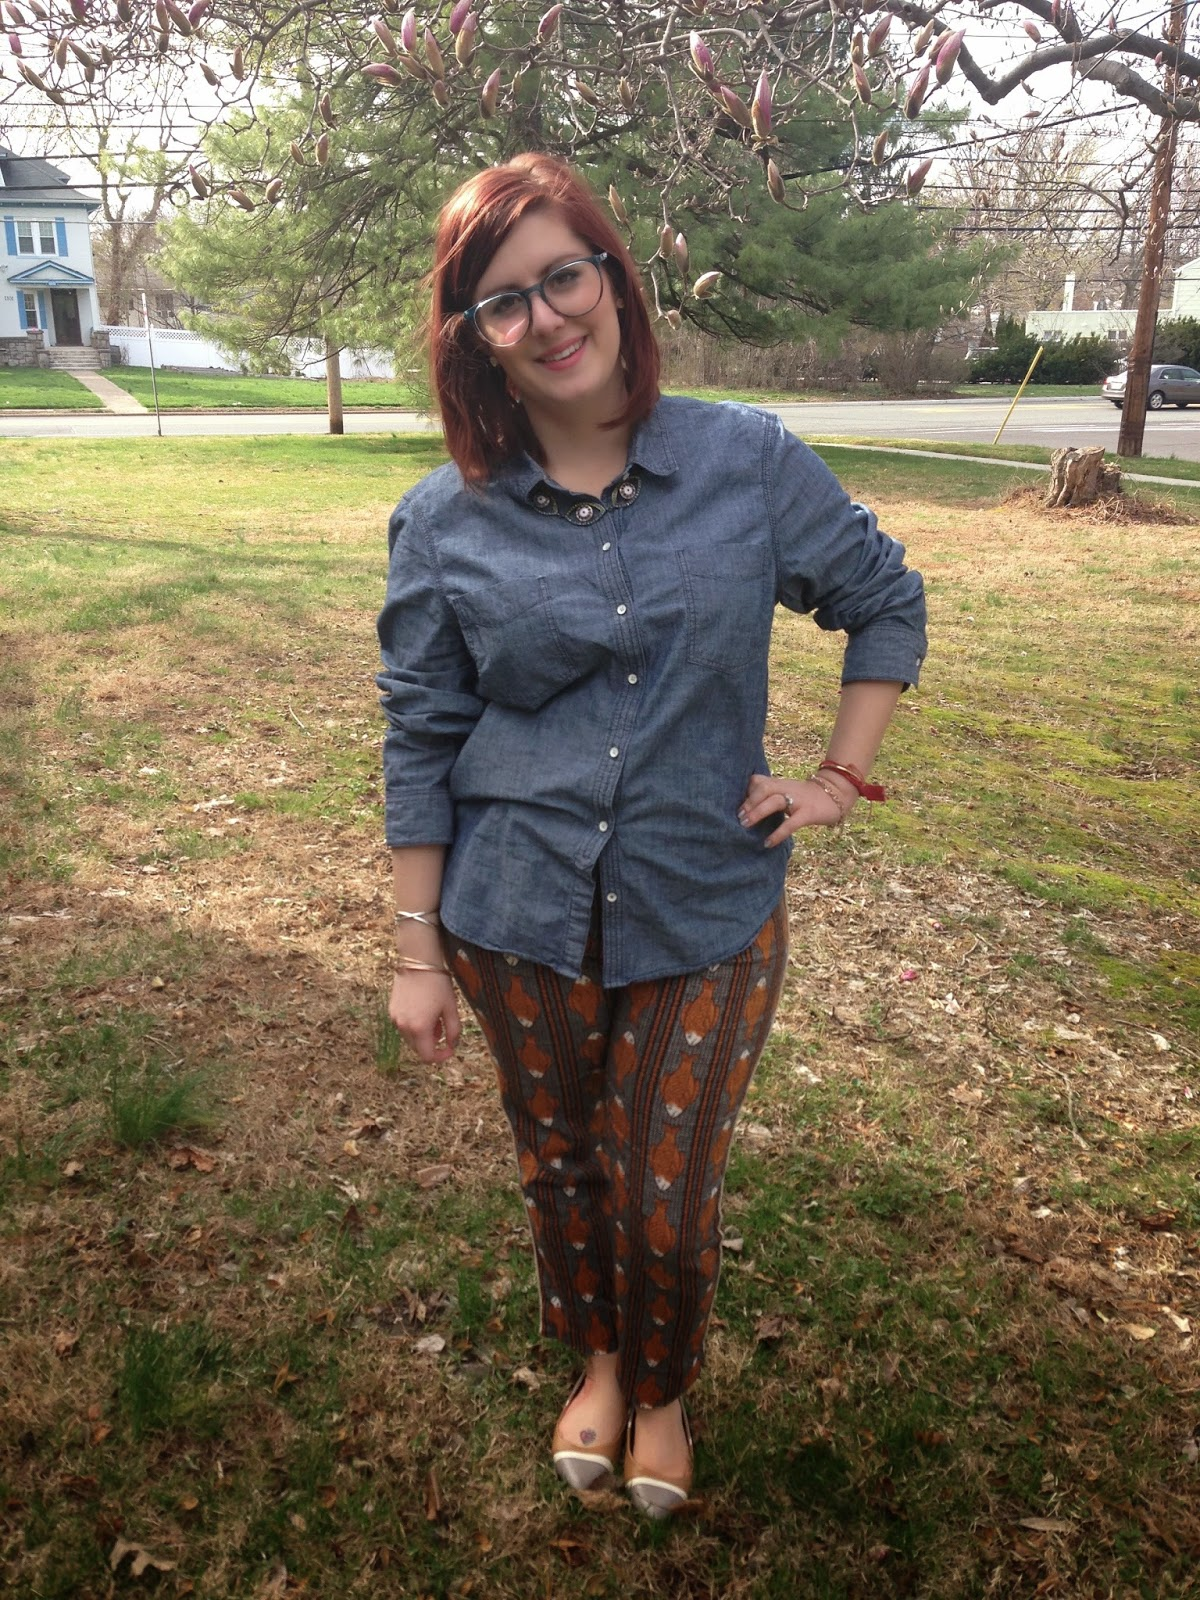 b94fa359c60cc3 behind the leopard glasses: Shop Girl Saturday! Spring cleaning for ...